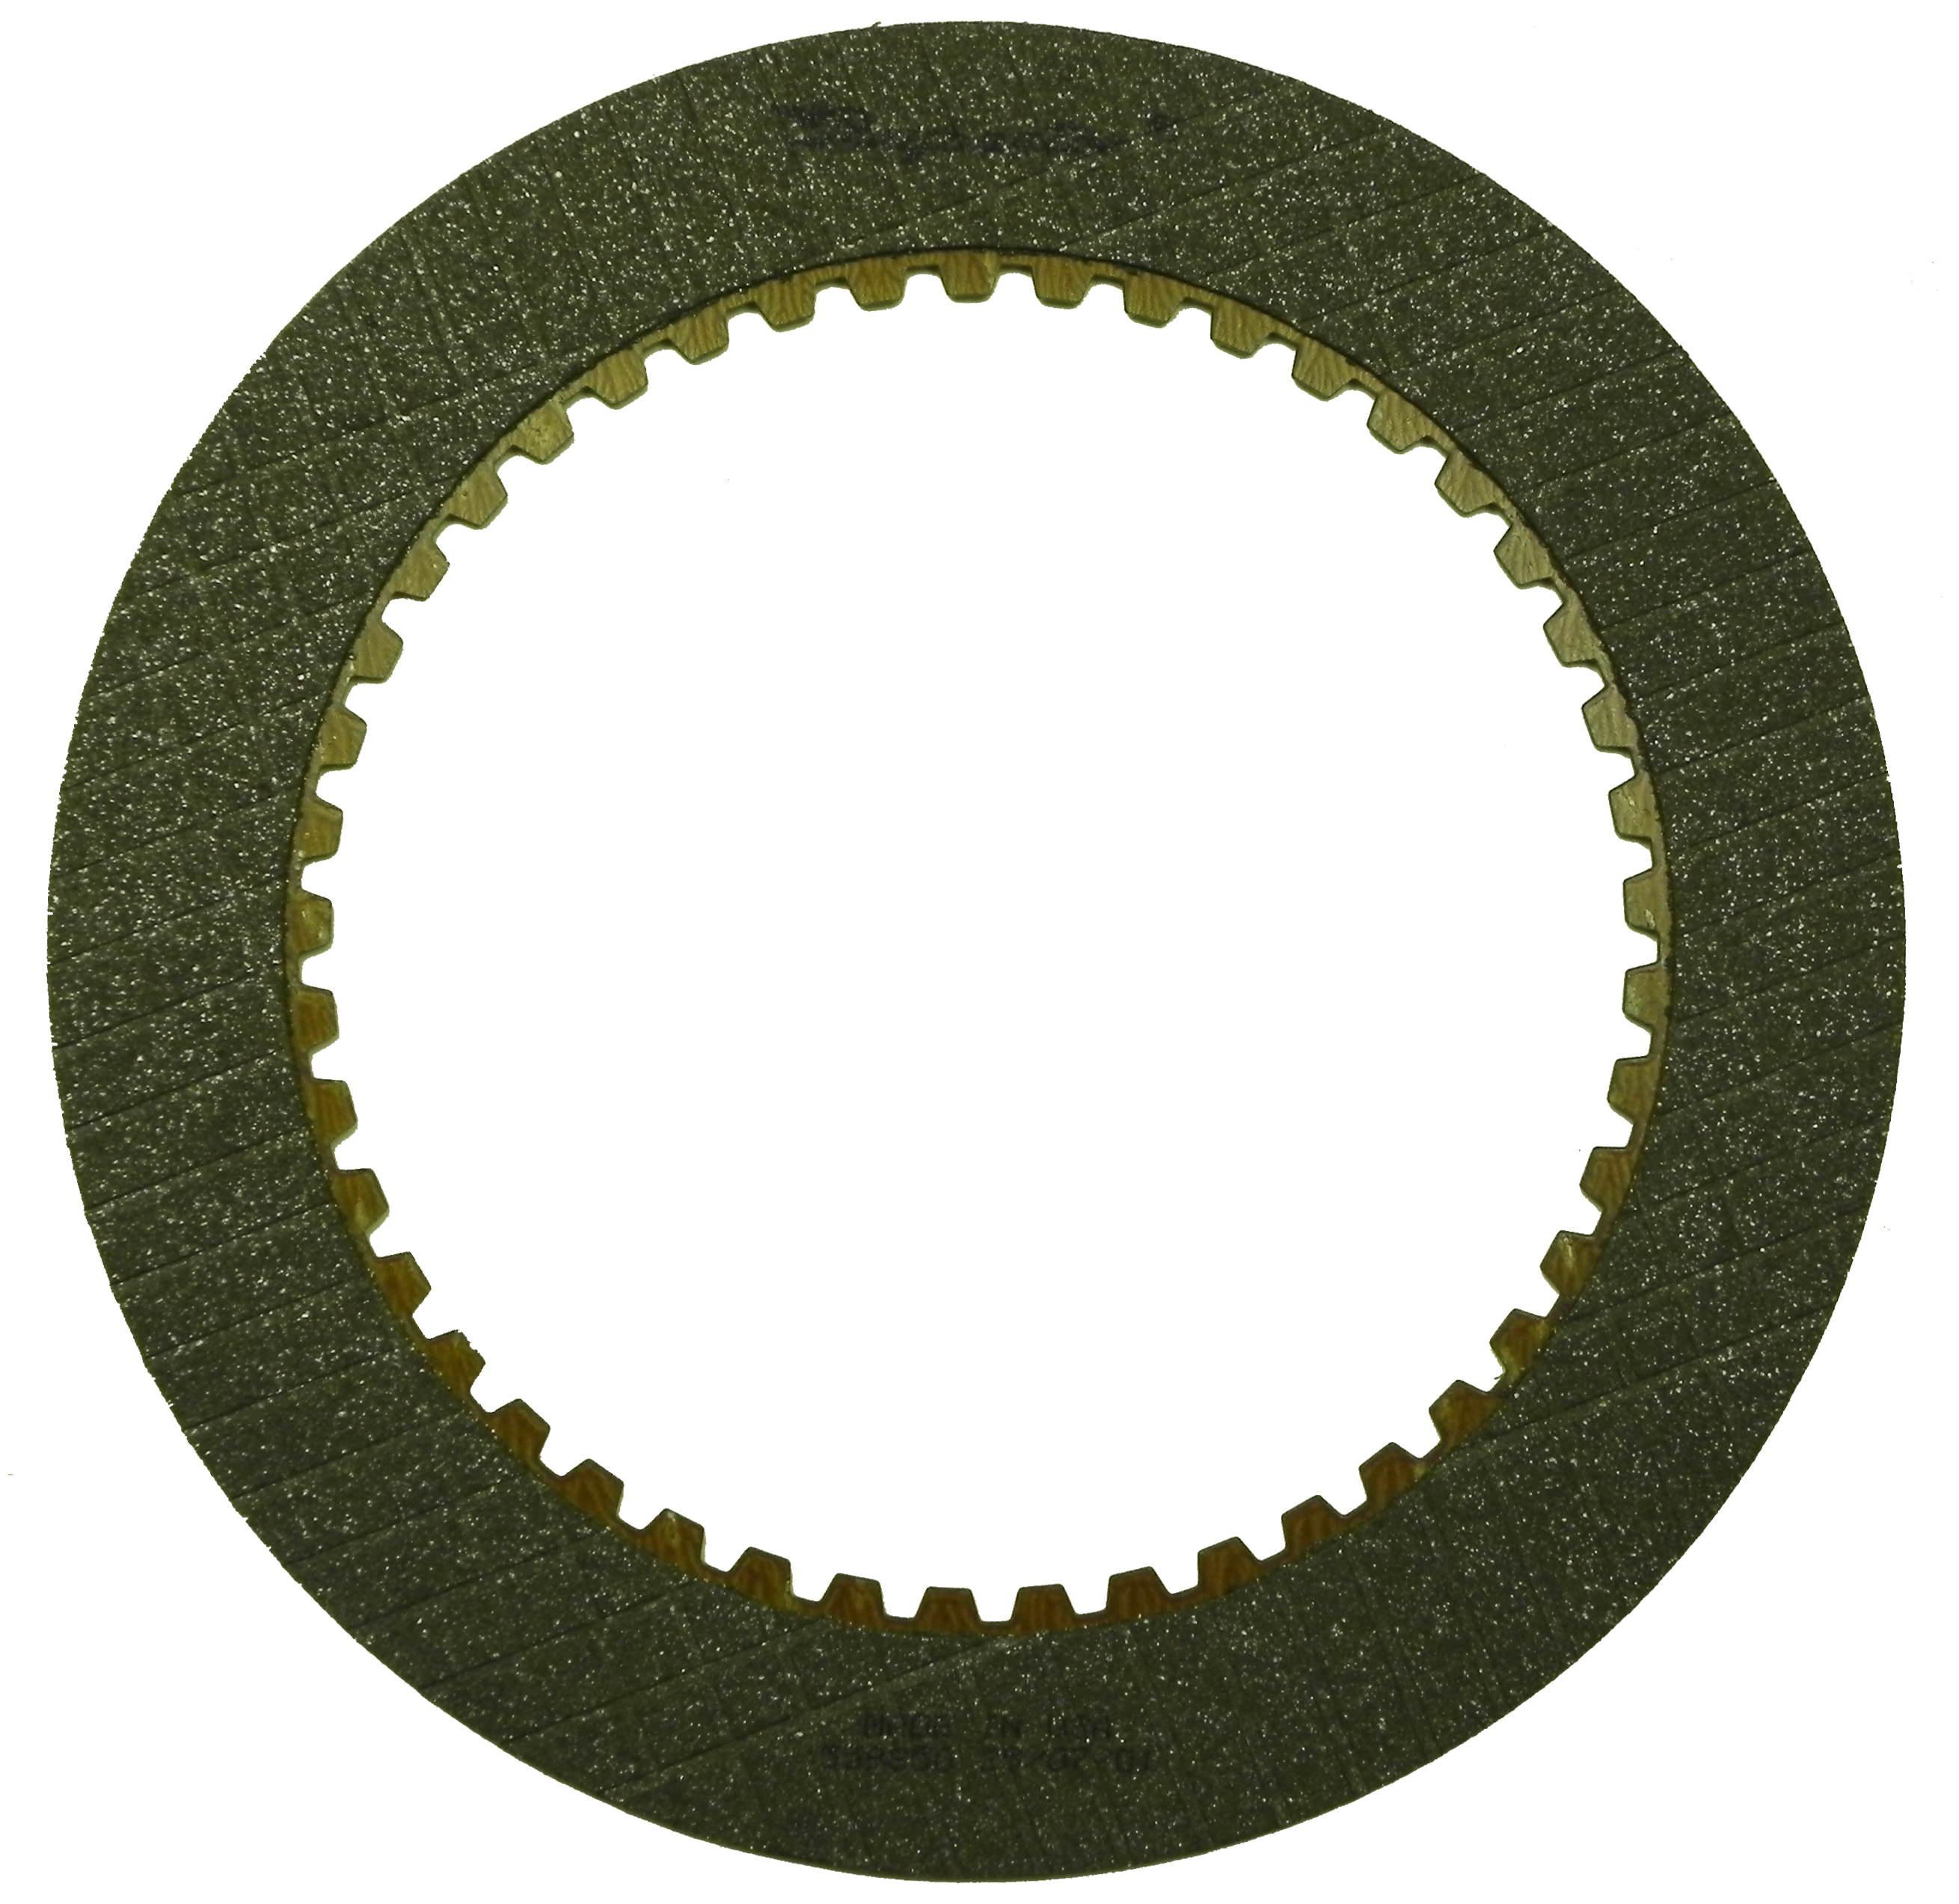 R559850 | 1968-1981 Friction Clutch Plate Graphitic Direct Graphitic, Selective